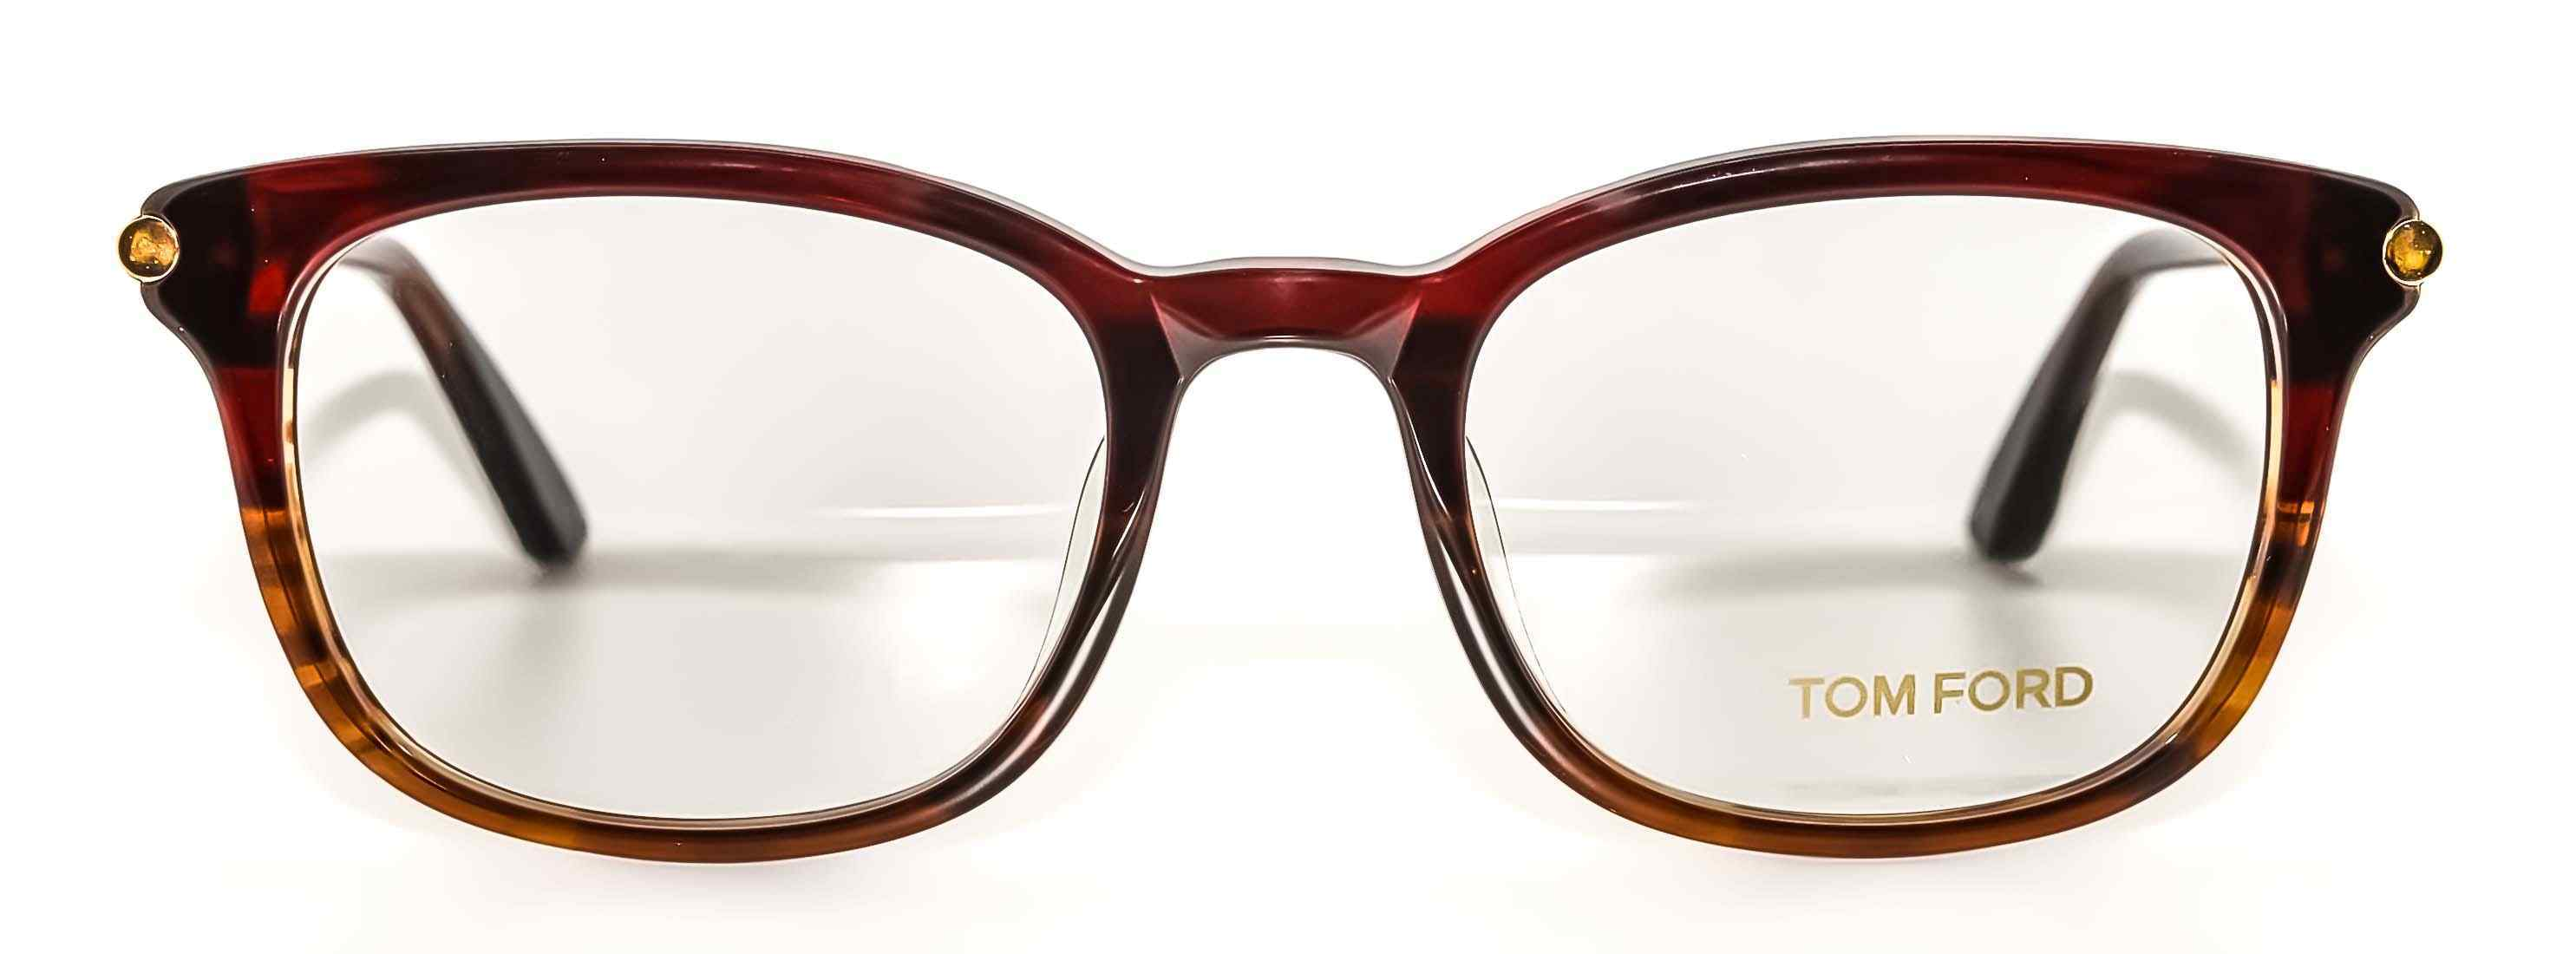 Tom Ford spectacles 4236 71 1 2970x1100